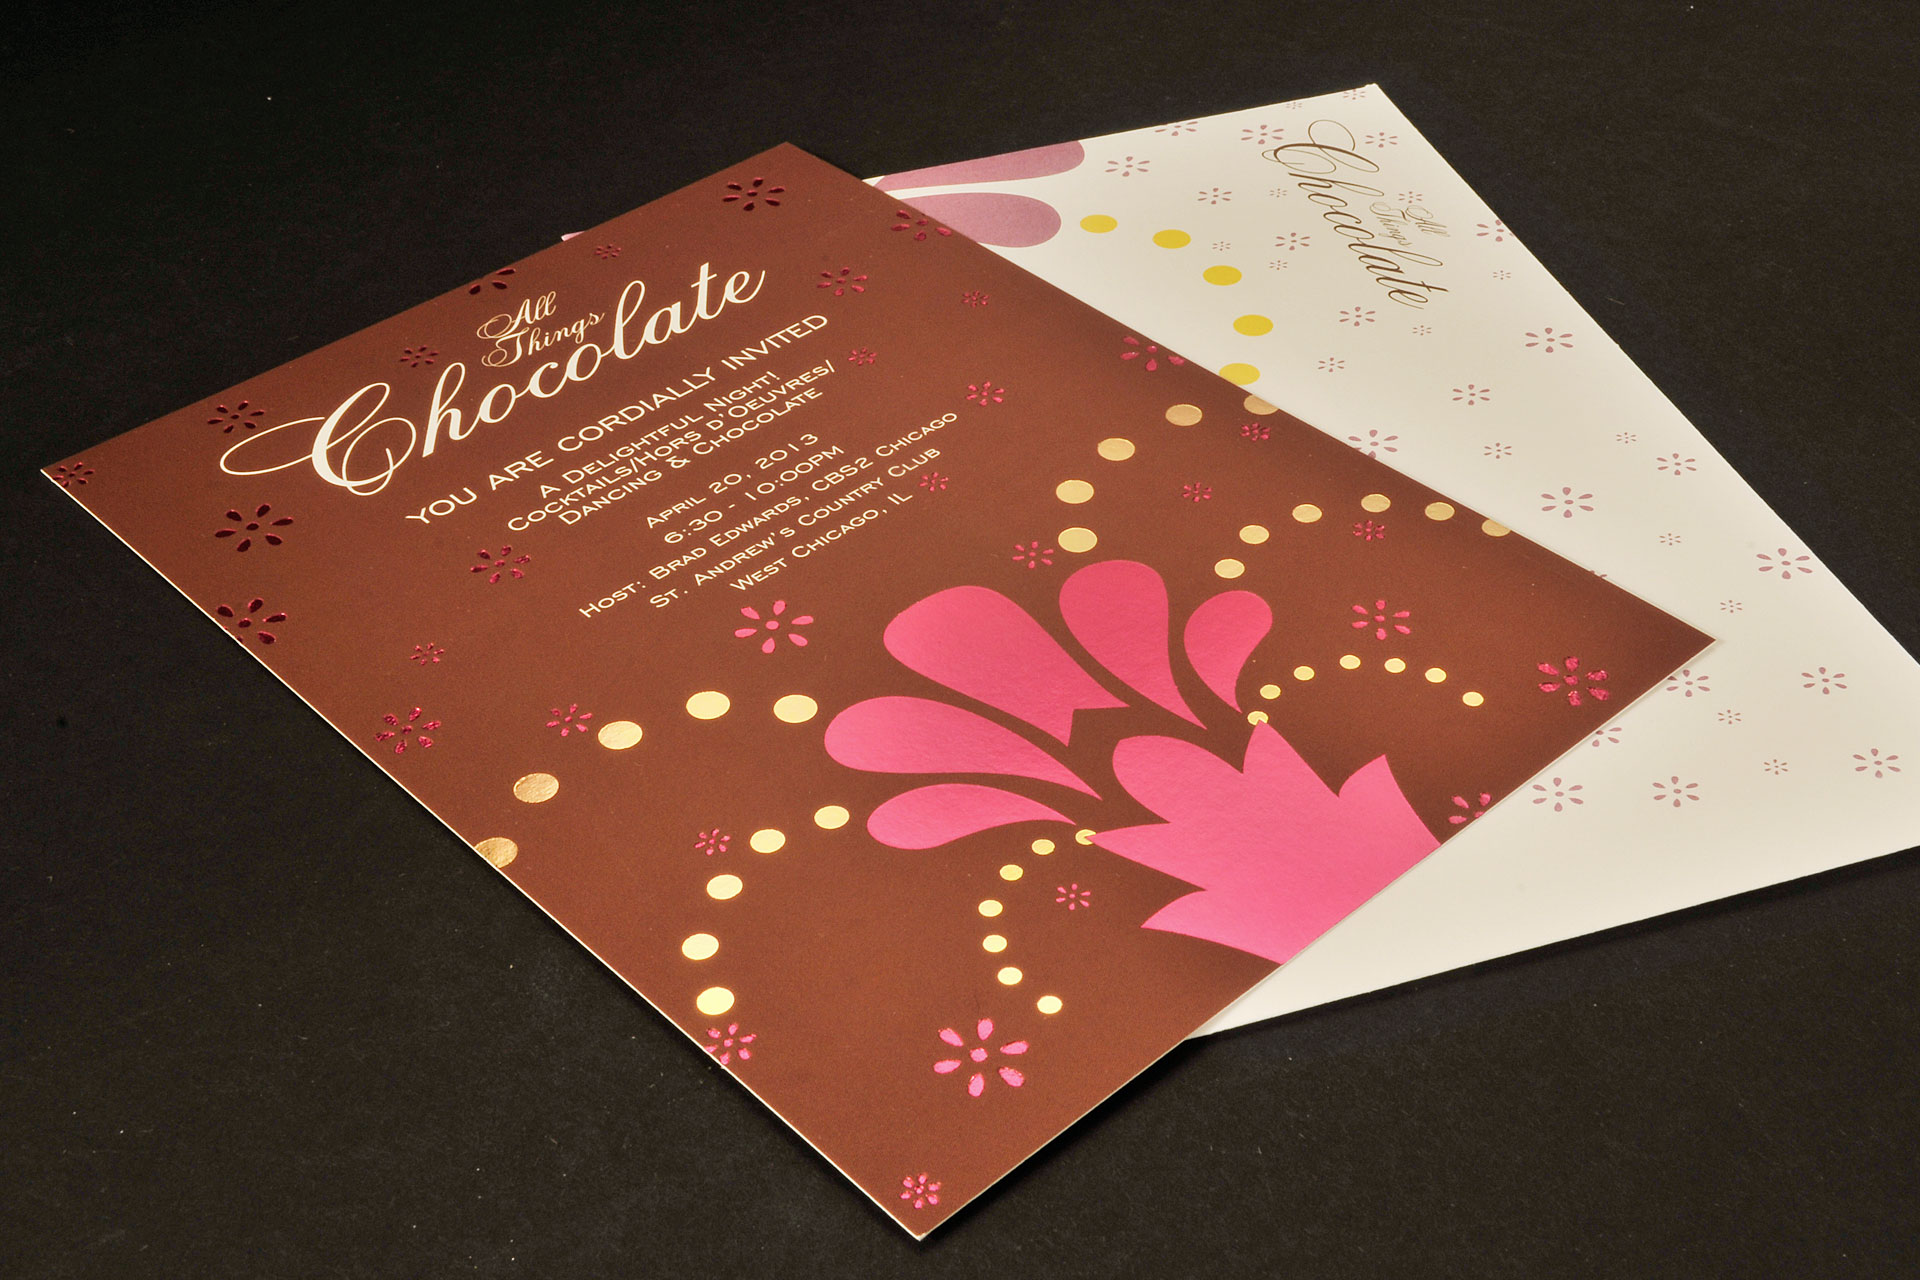 Spot Color Foil Stamped Event Invitation